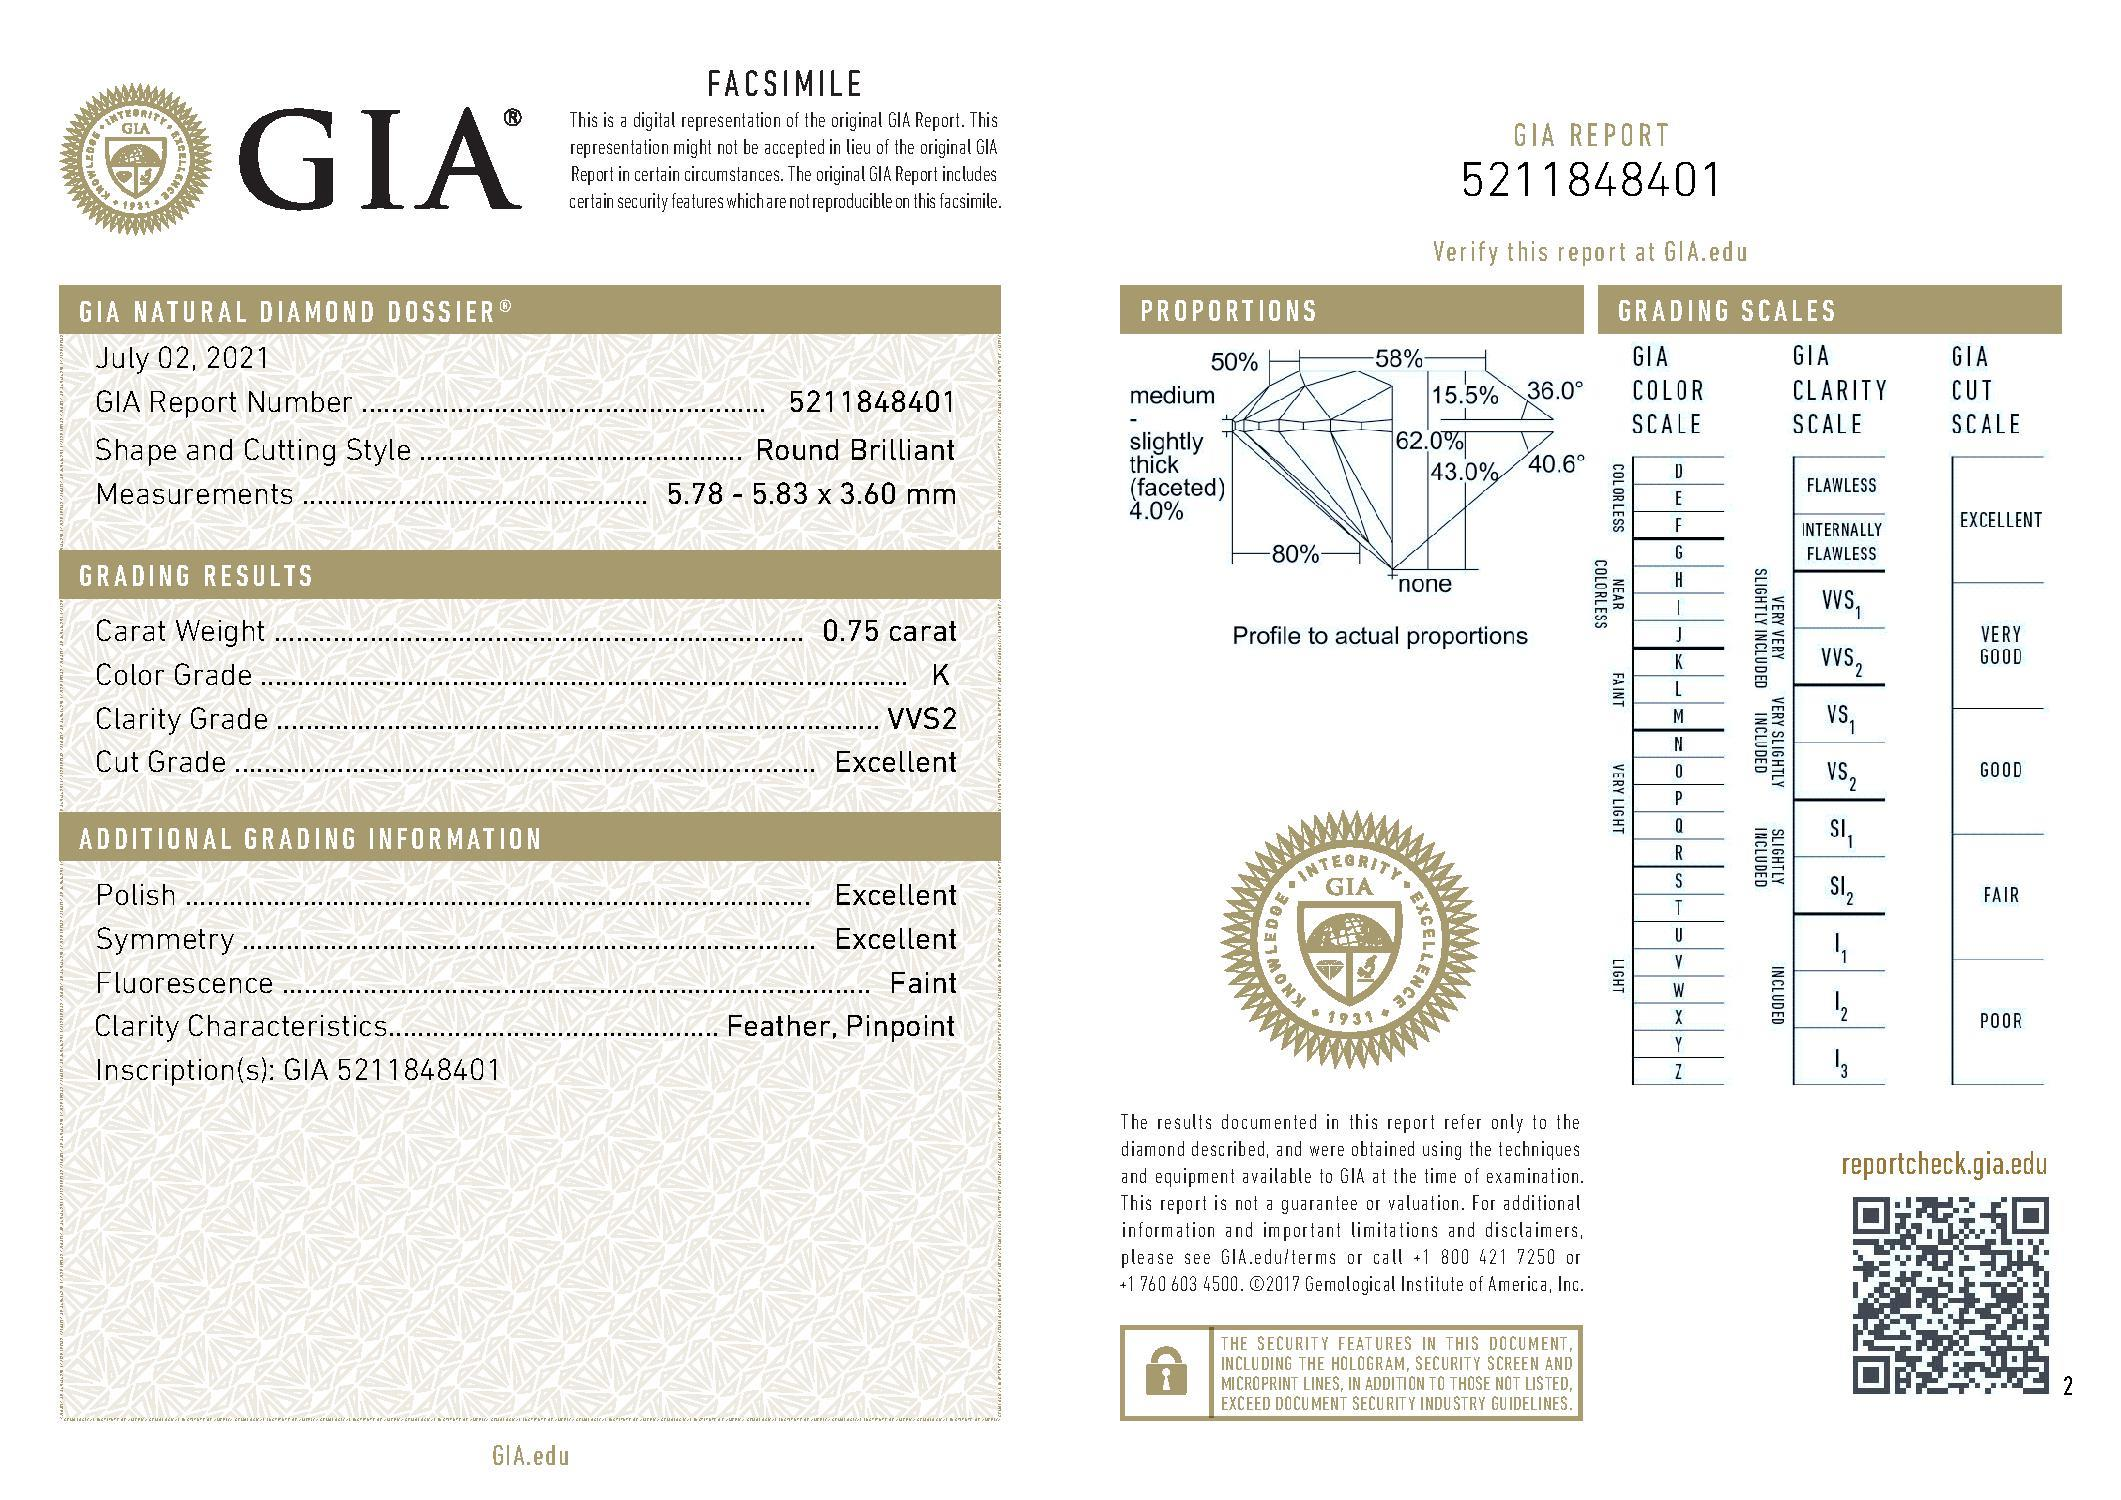 This is a 0.75 carat round shape, K color, VVS2 clarity natural diamond accompanied by a GIA grading report.